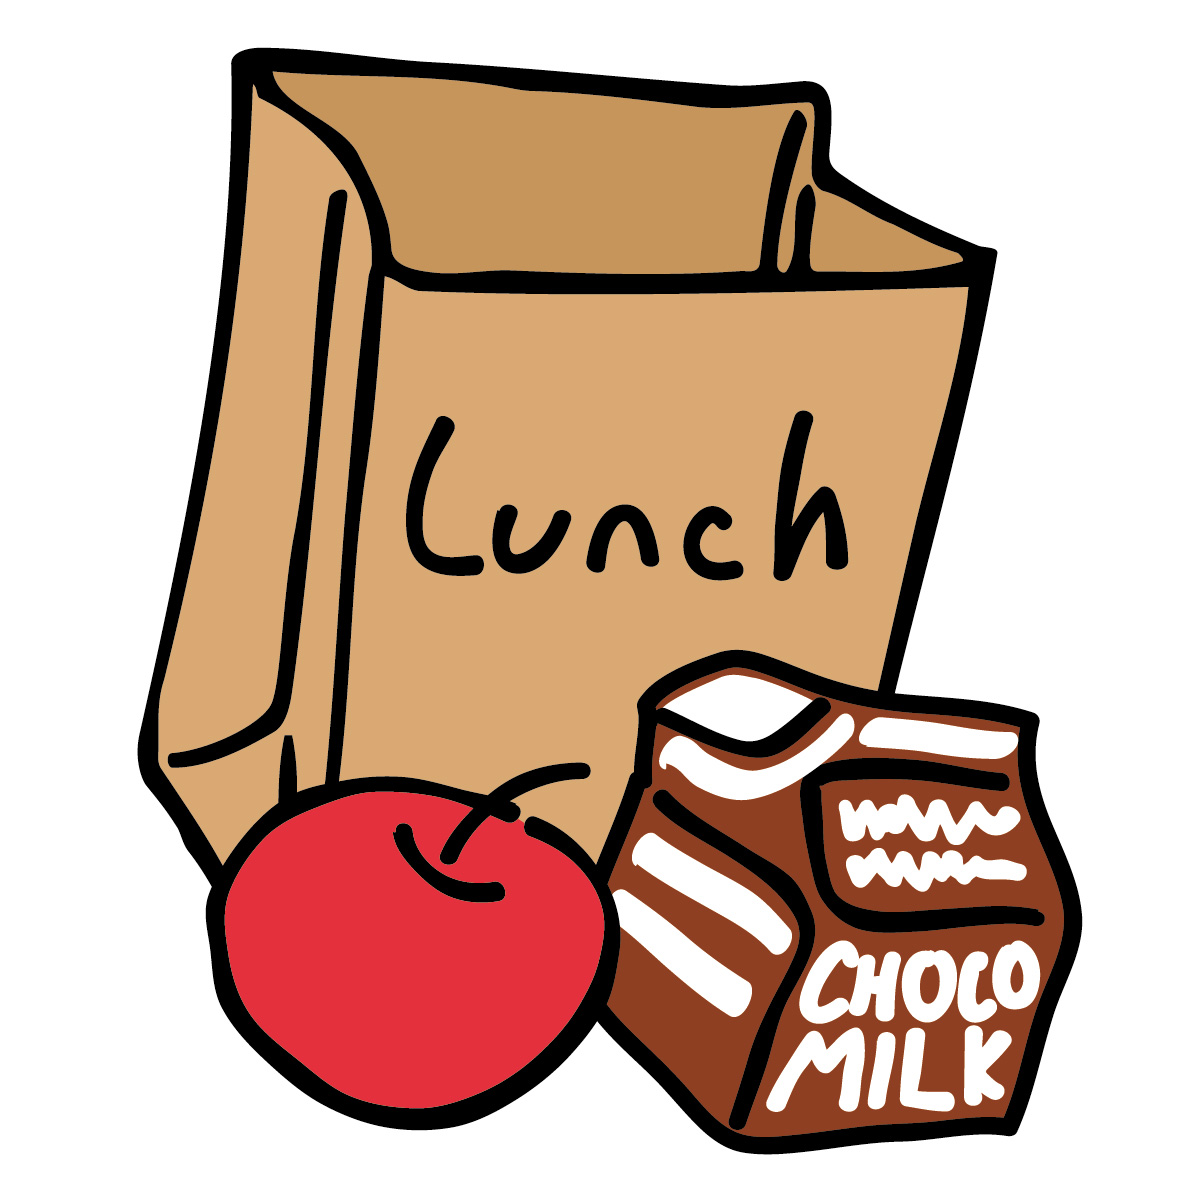 School Lunch Images